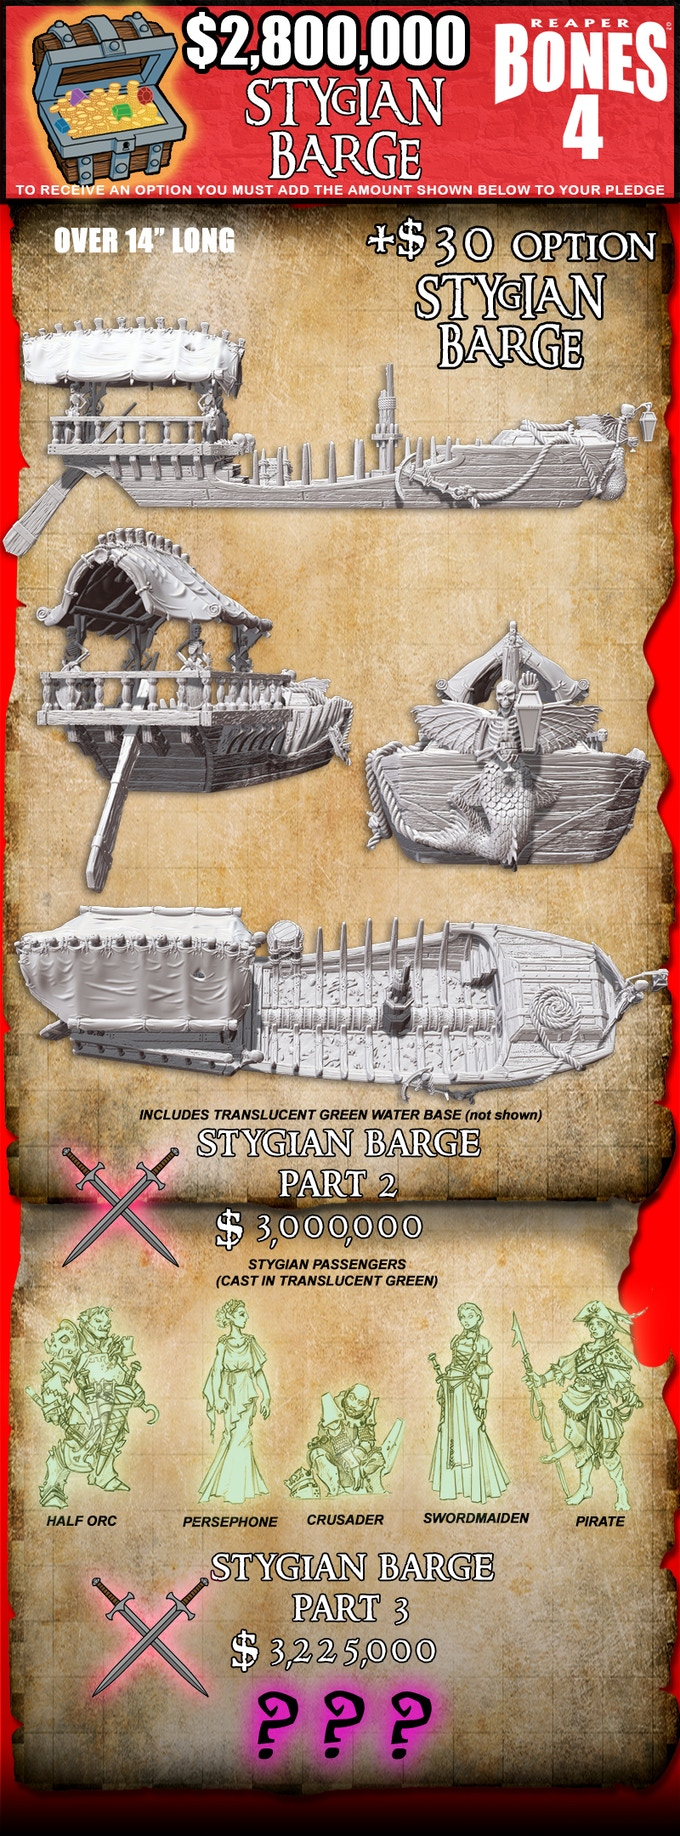 To receive the Stygian Barge, increase your pledge by $30 and select this reward in the Pledge Manager